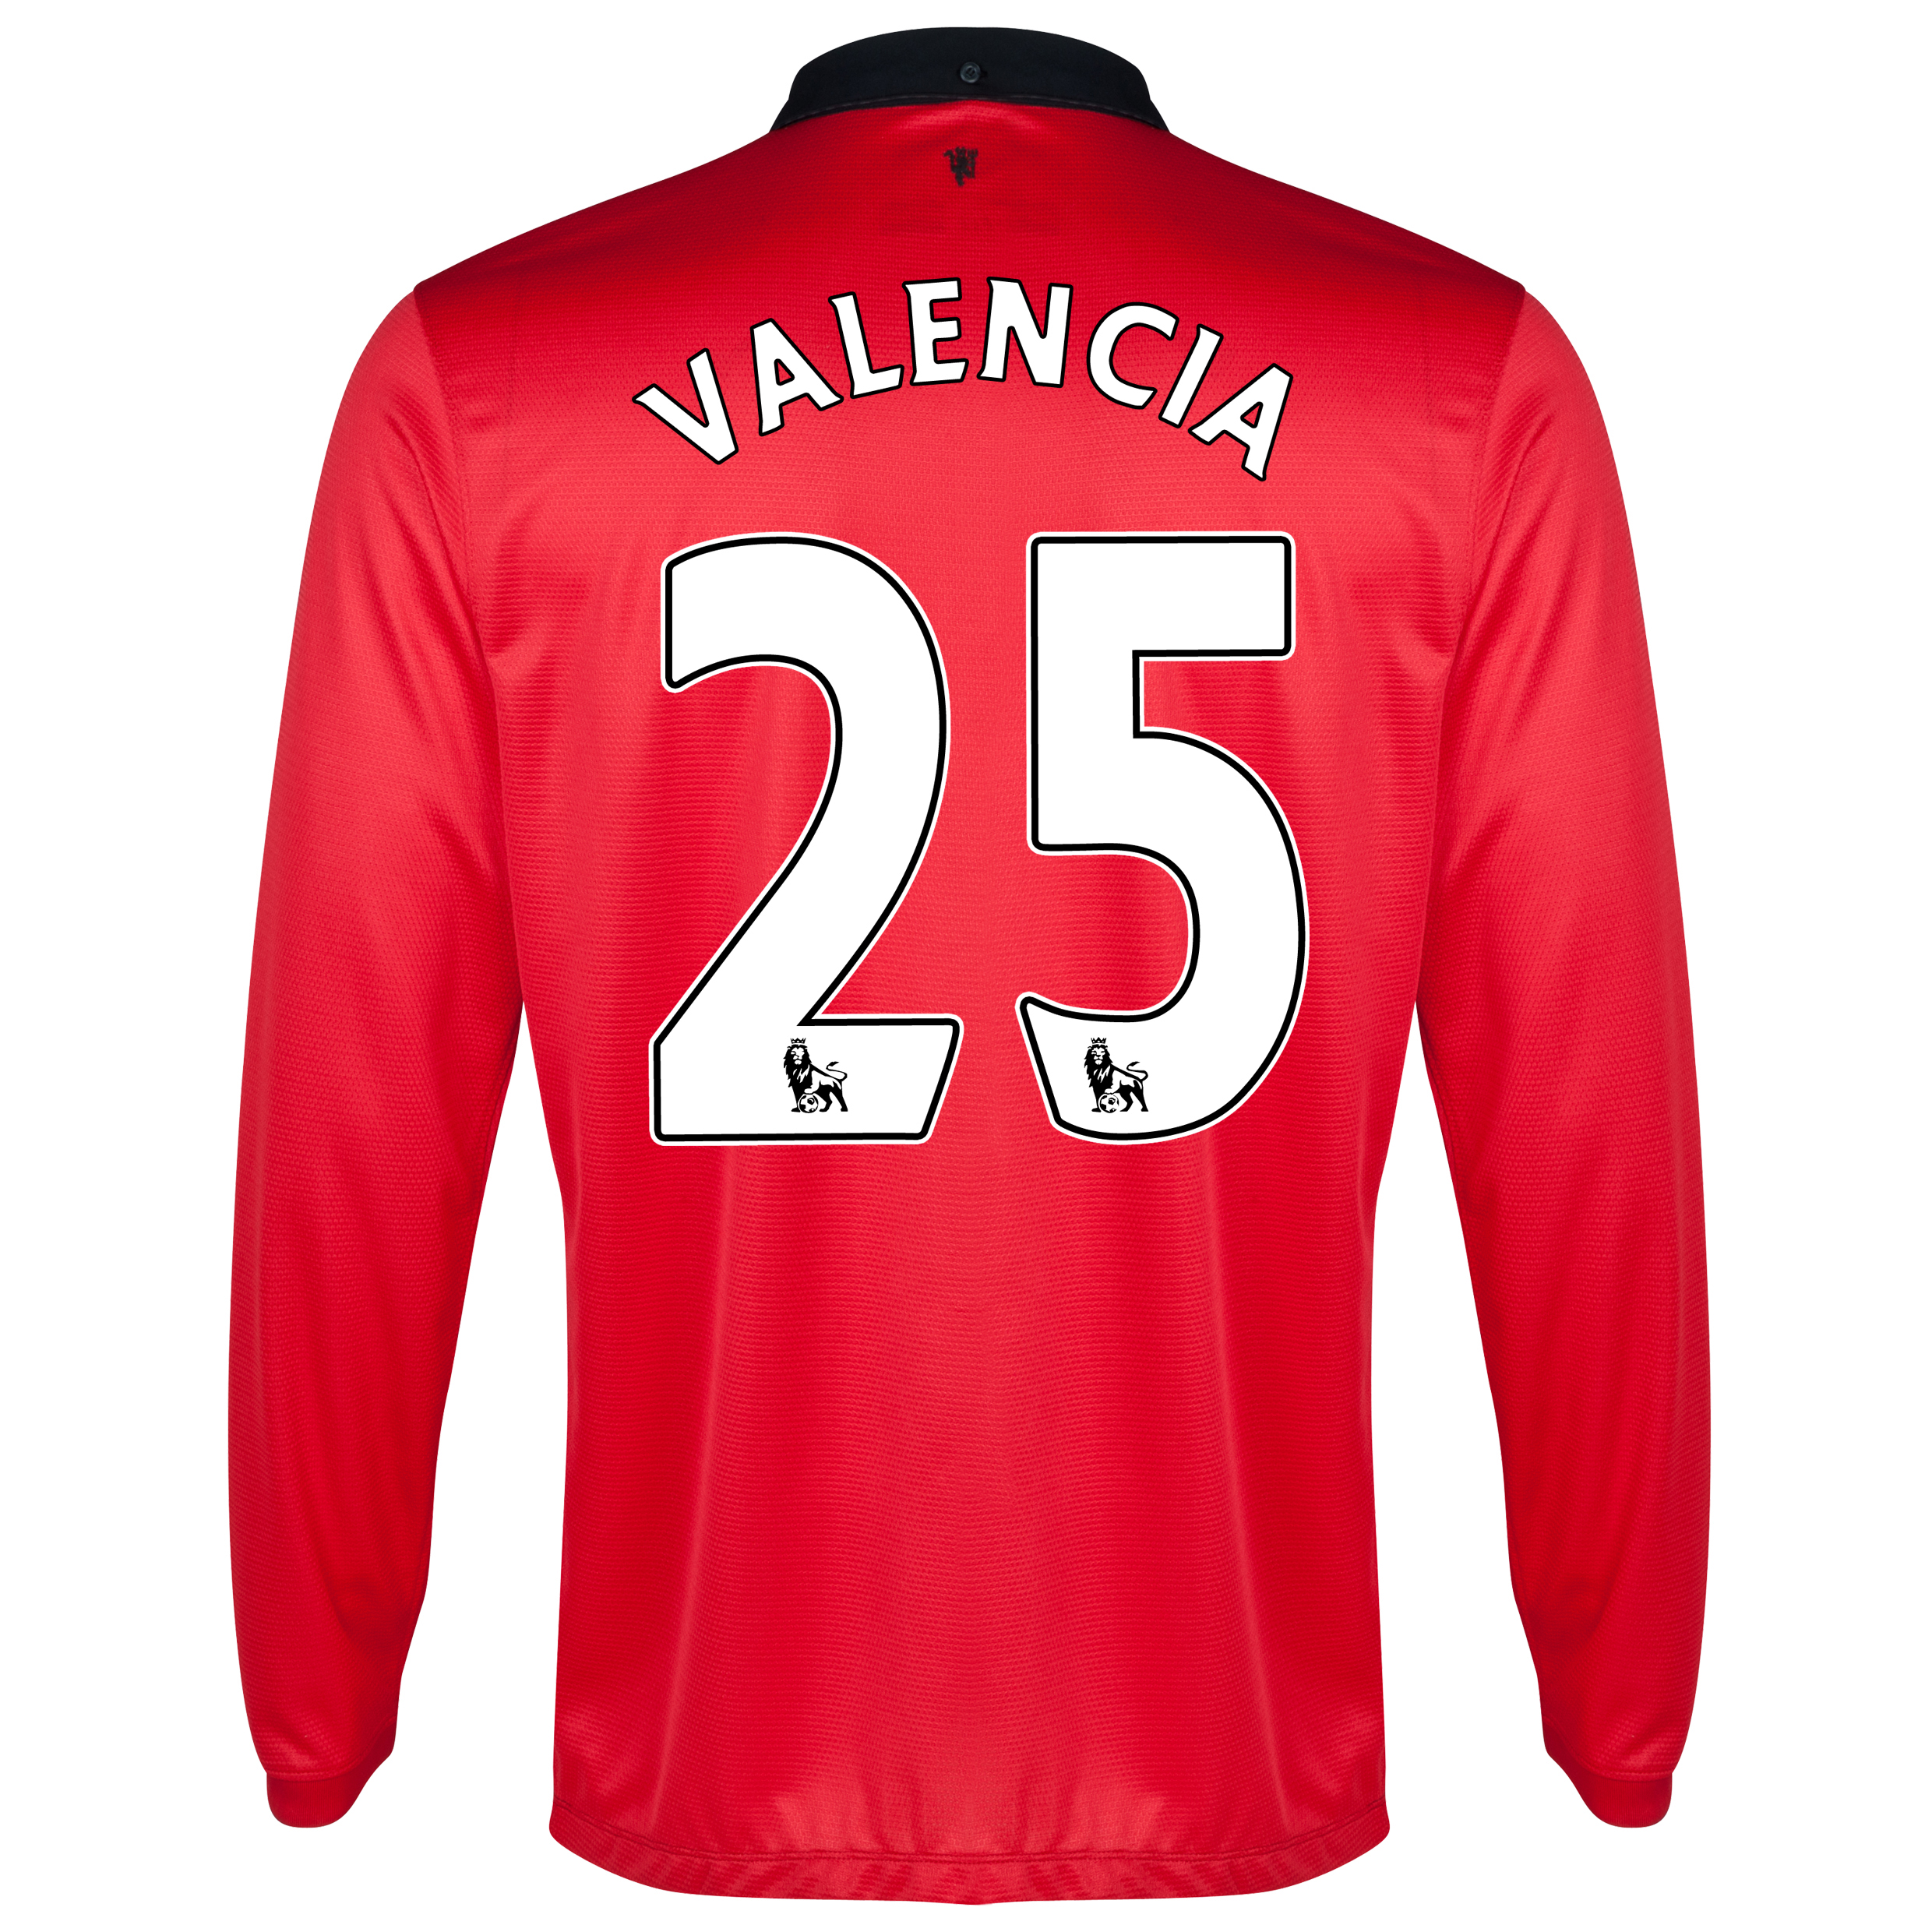 Manchester United Home Shirt 2013/14 - Long Sleeved - Kids with Valencia 7 printing